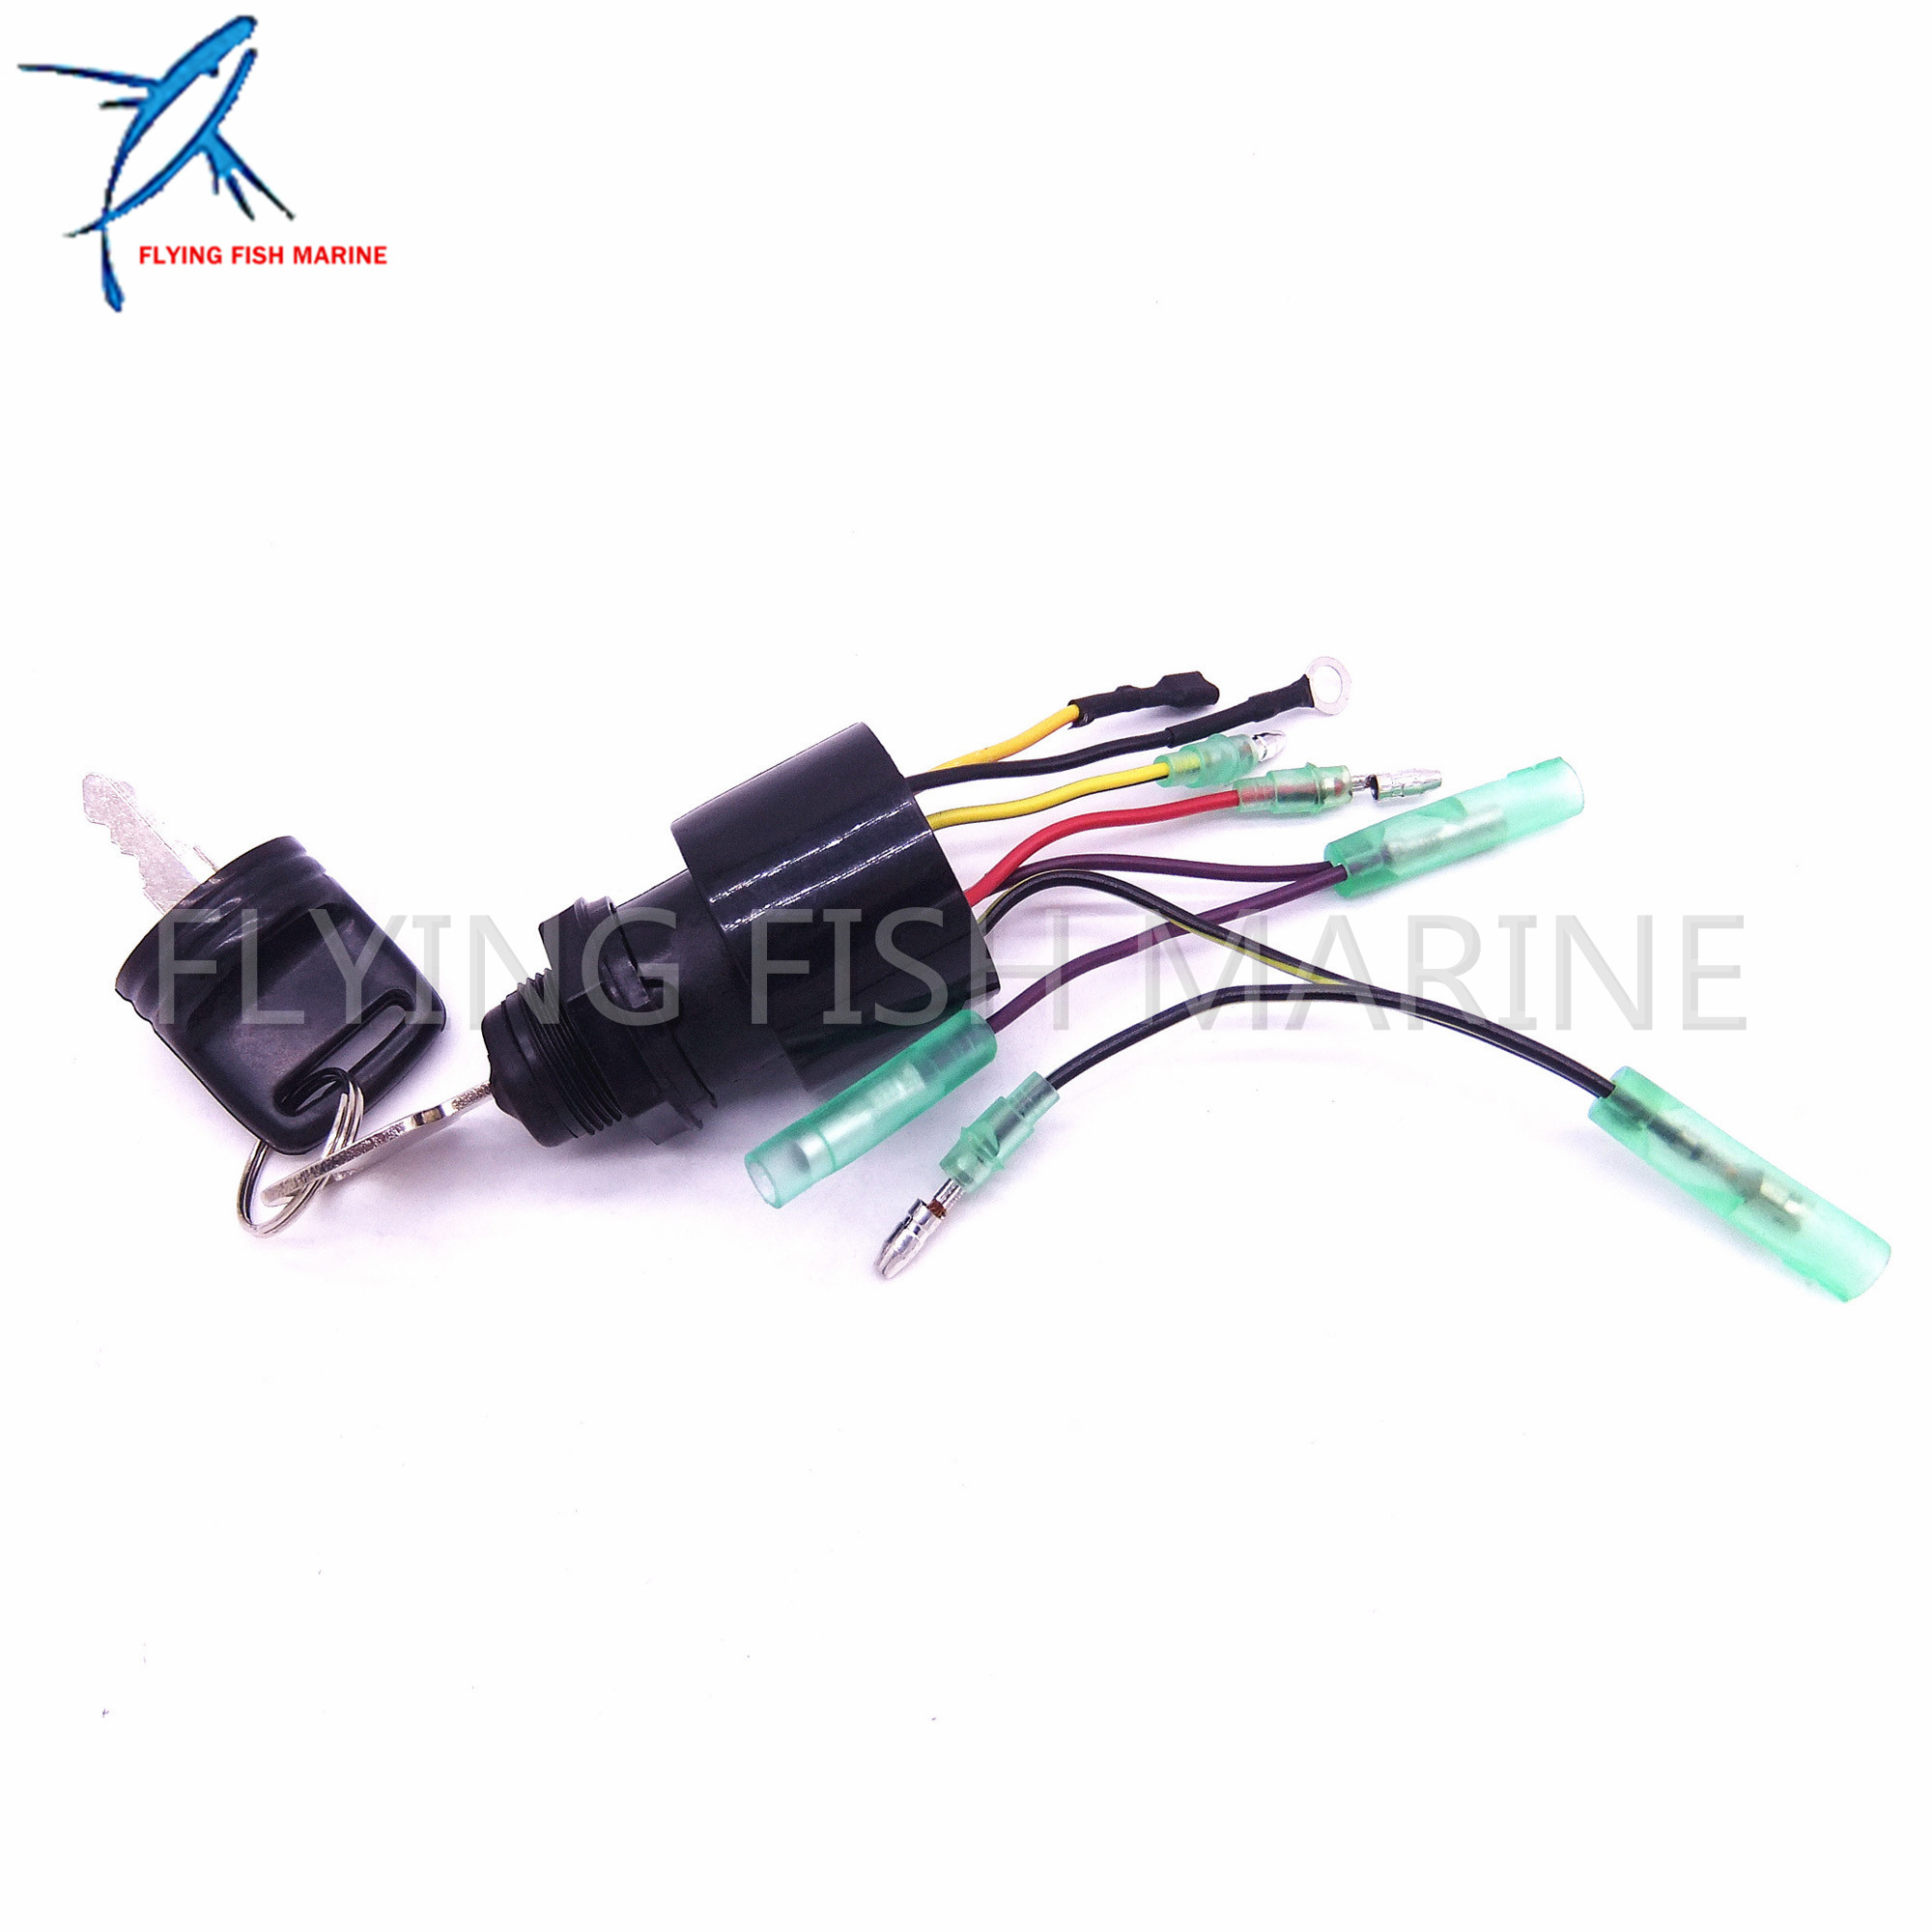 87-17009A5 Boat Motor Ignition Key Switch for Mercury Outboard Motors 3 Position Off-Run-Start